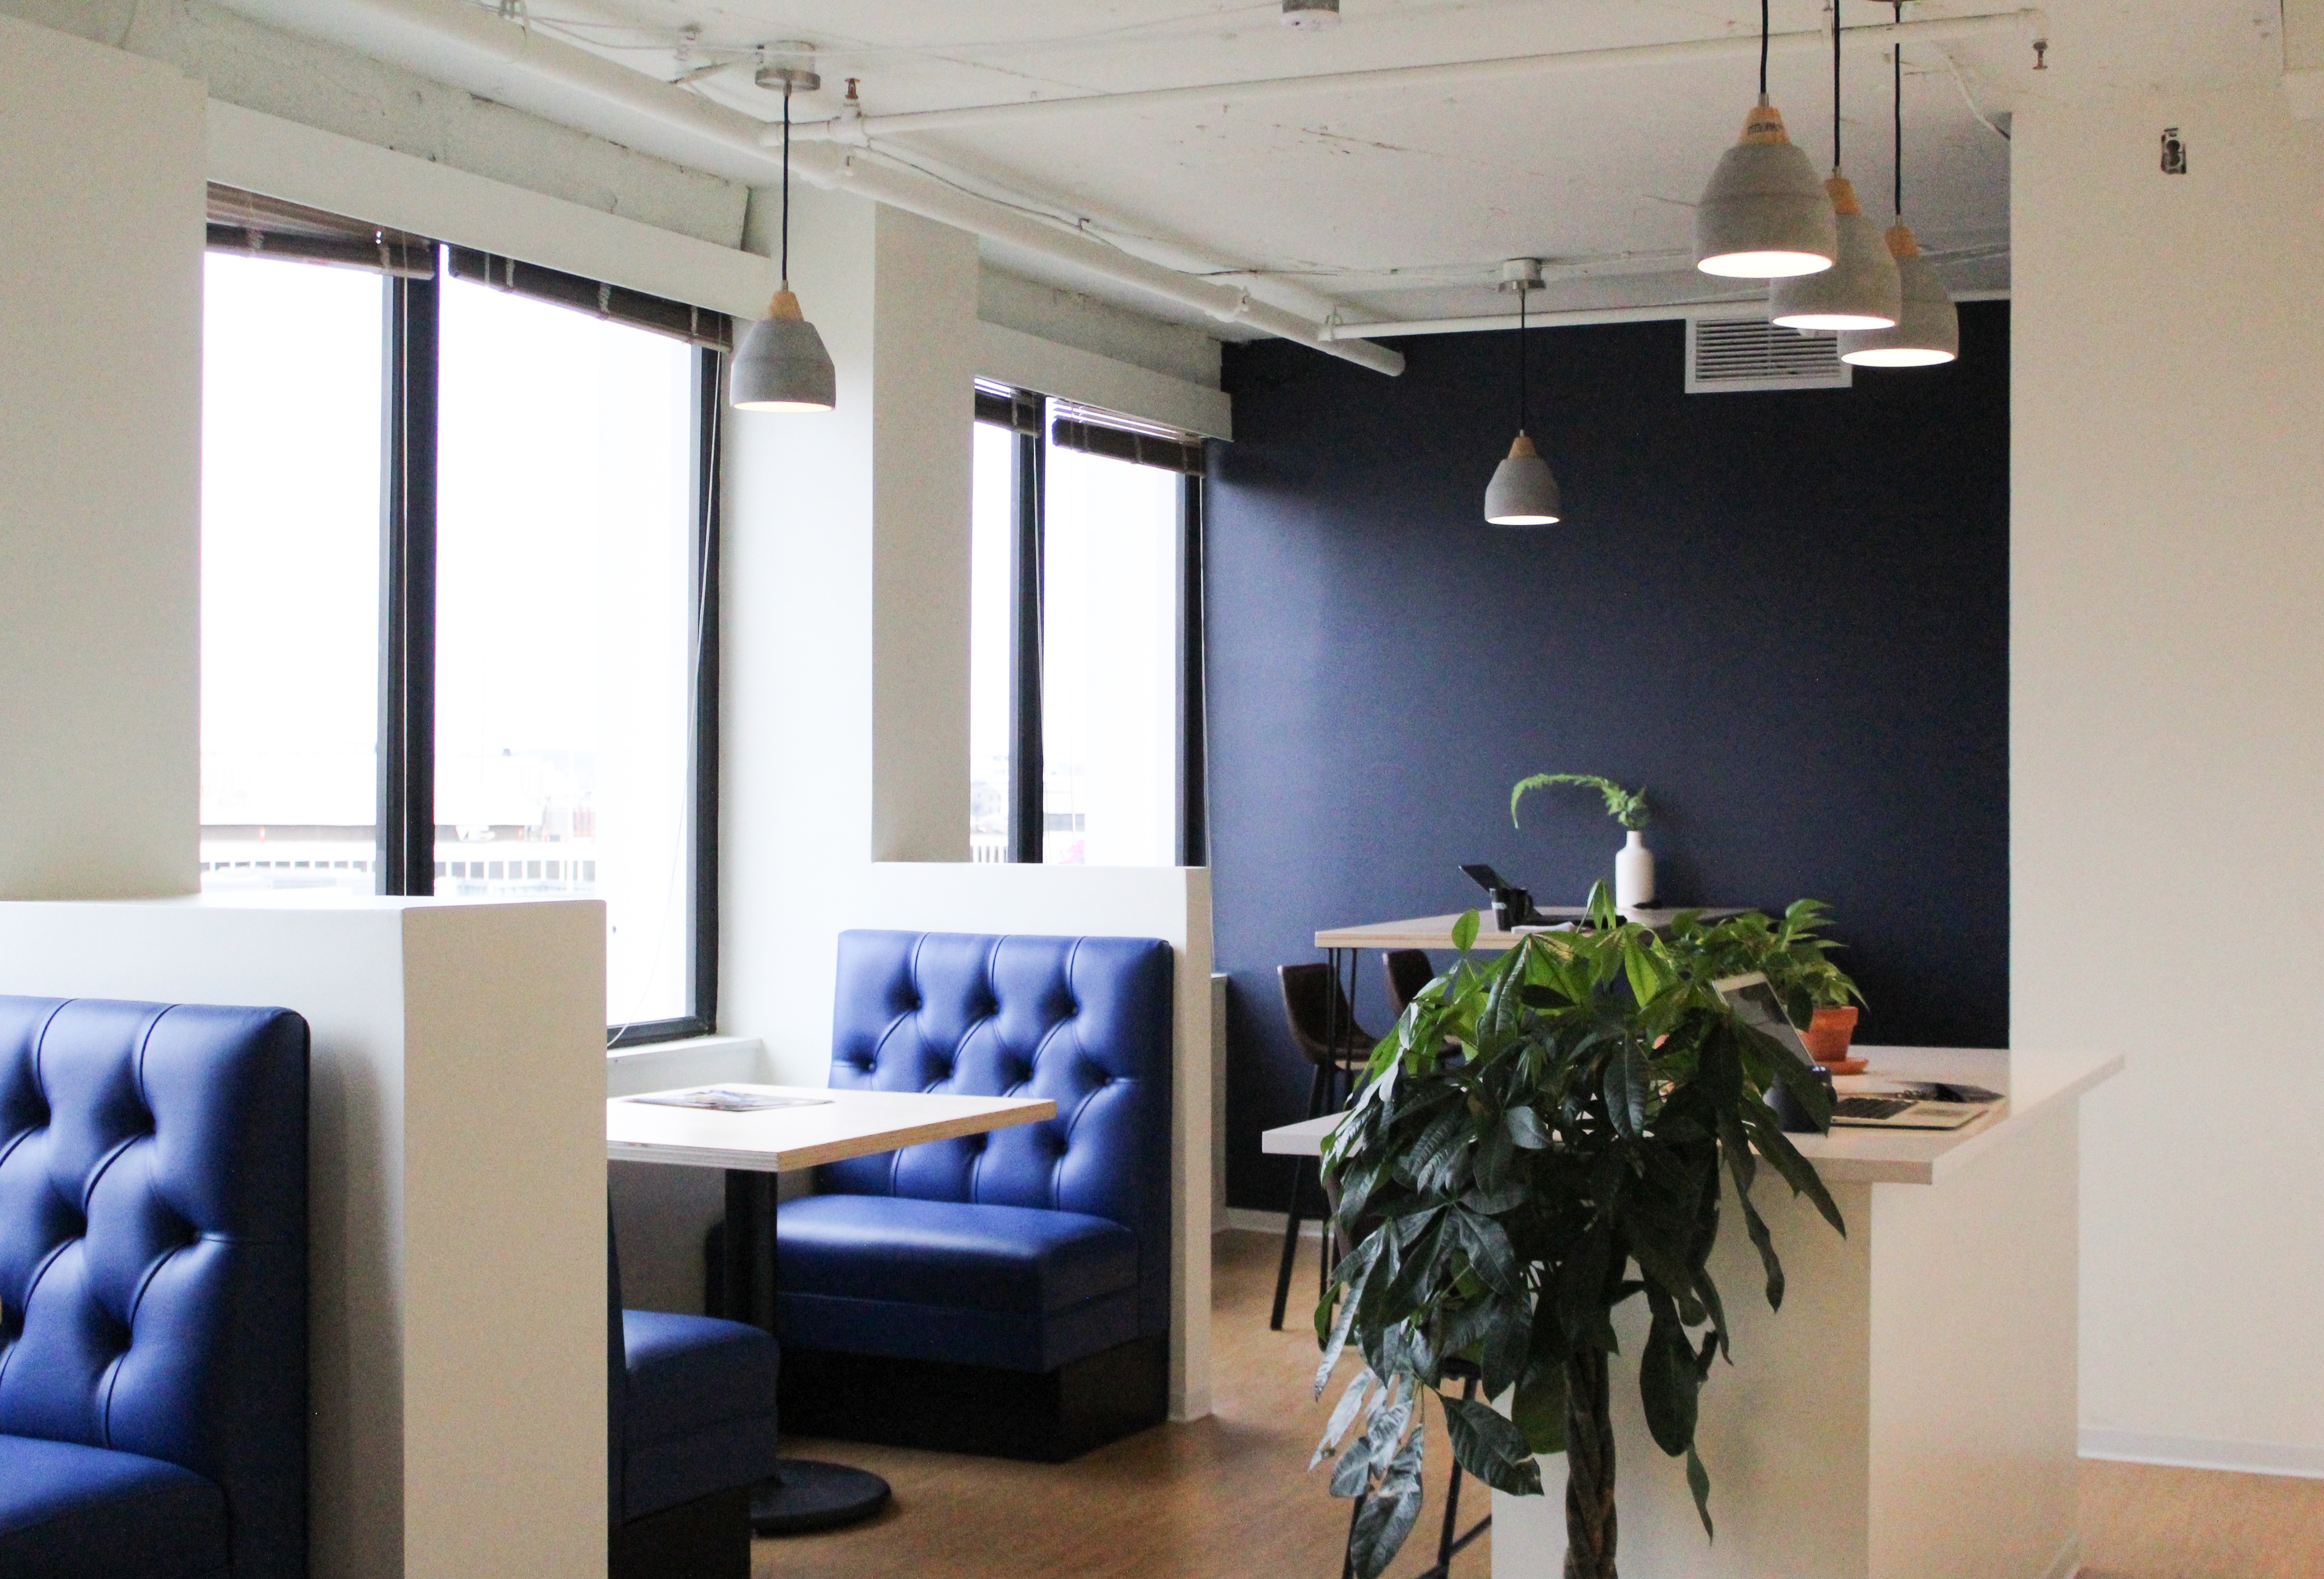 10755470848 img 7225 1 DC Based Coworking Company Cove Launches New Office Concept for Businesses